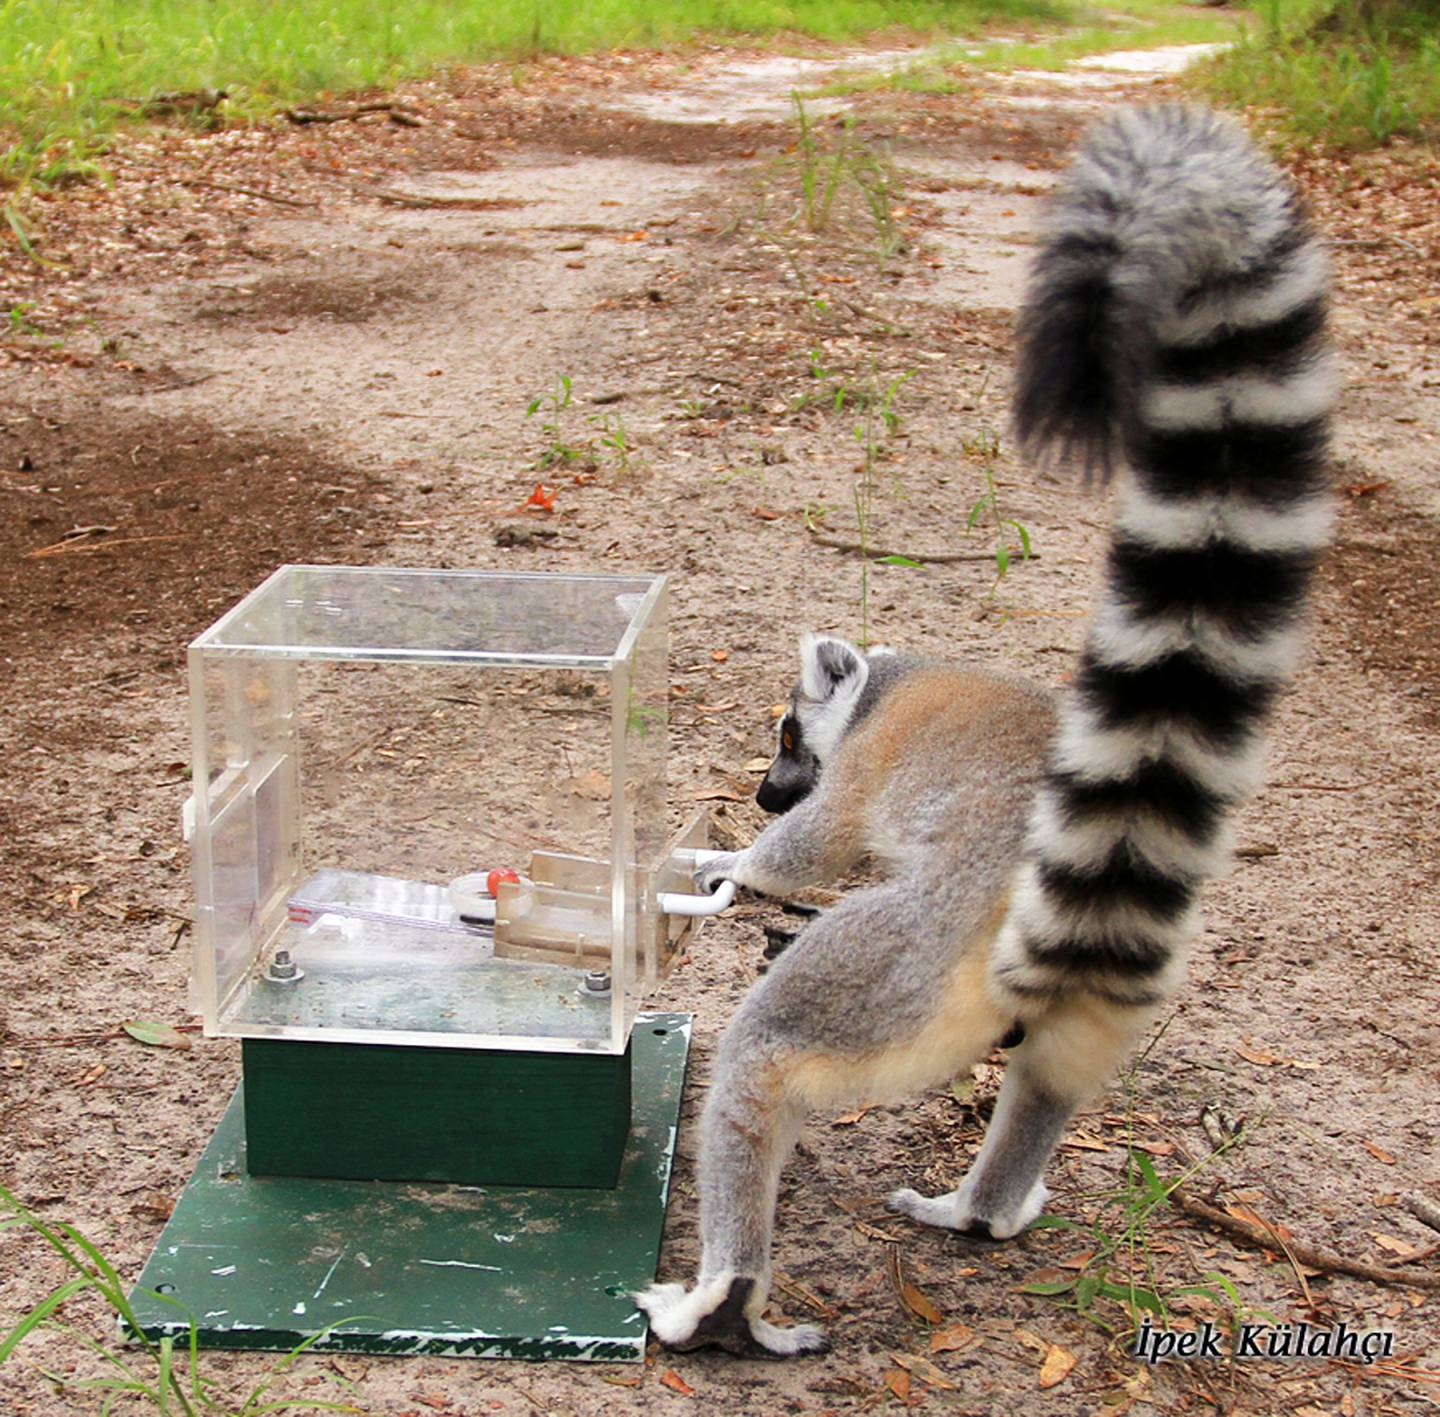 Lemur taking a grape from a box